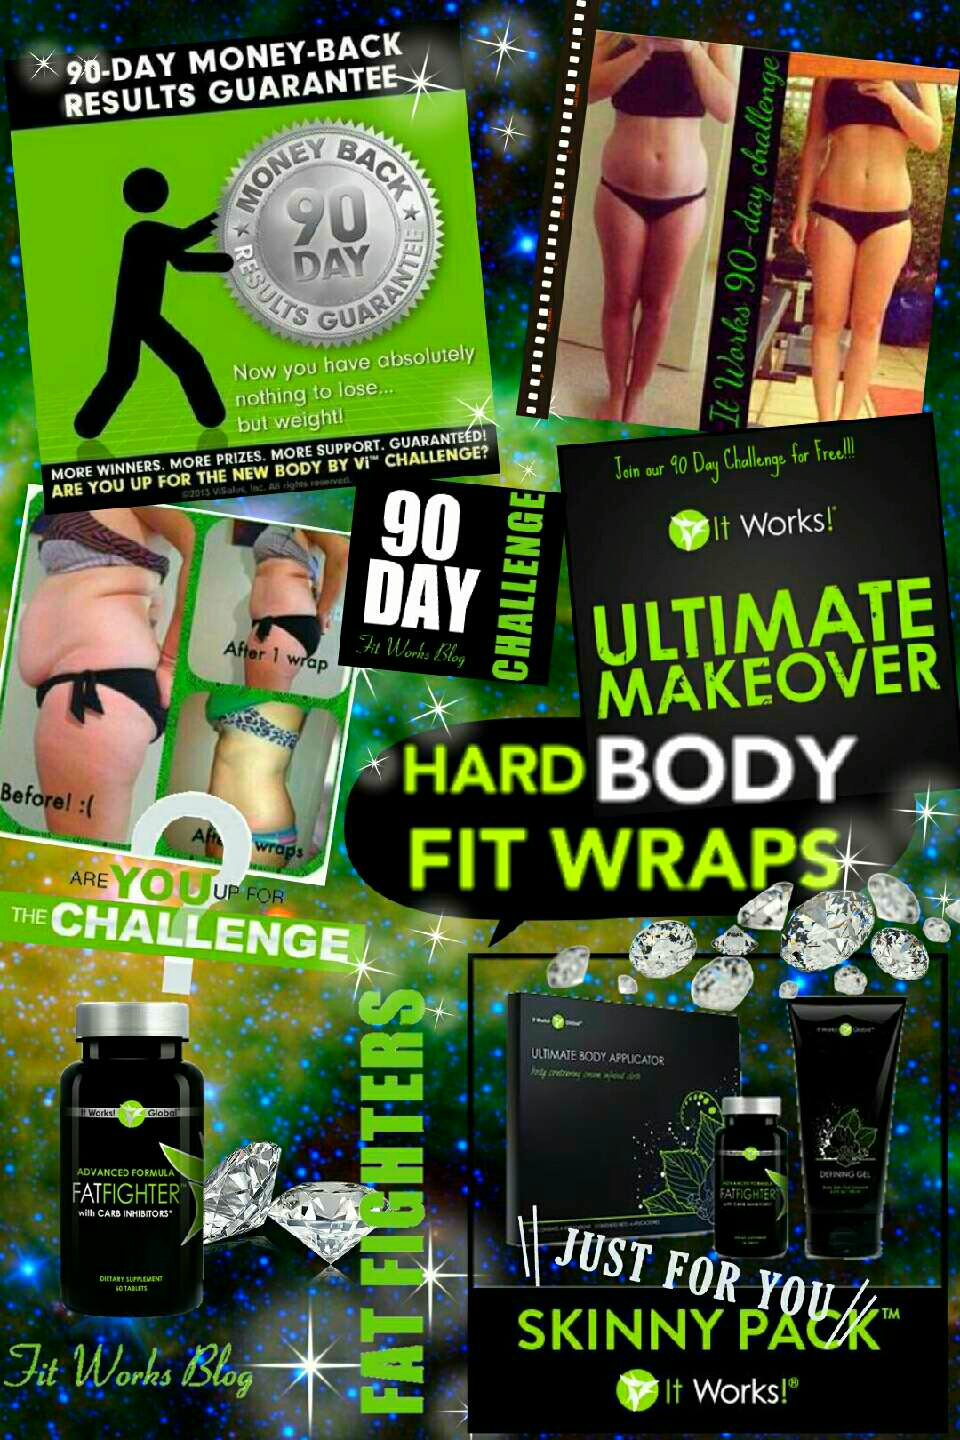 GET WRAP FIT  12 wraps 12 weeks  Only $59/month as a  LOYAL CUSTOMER